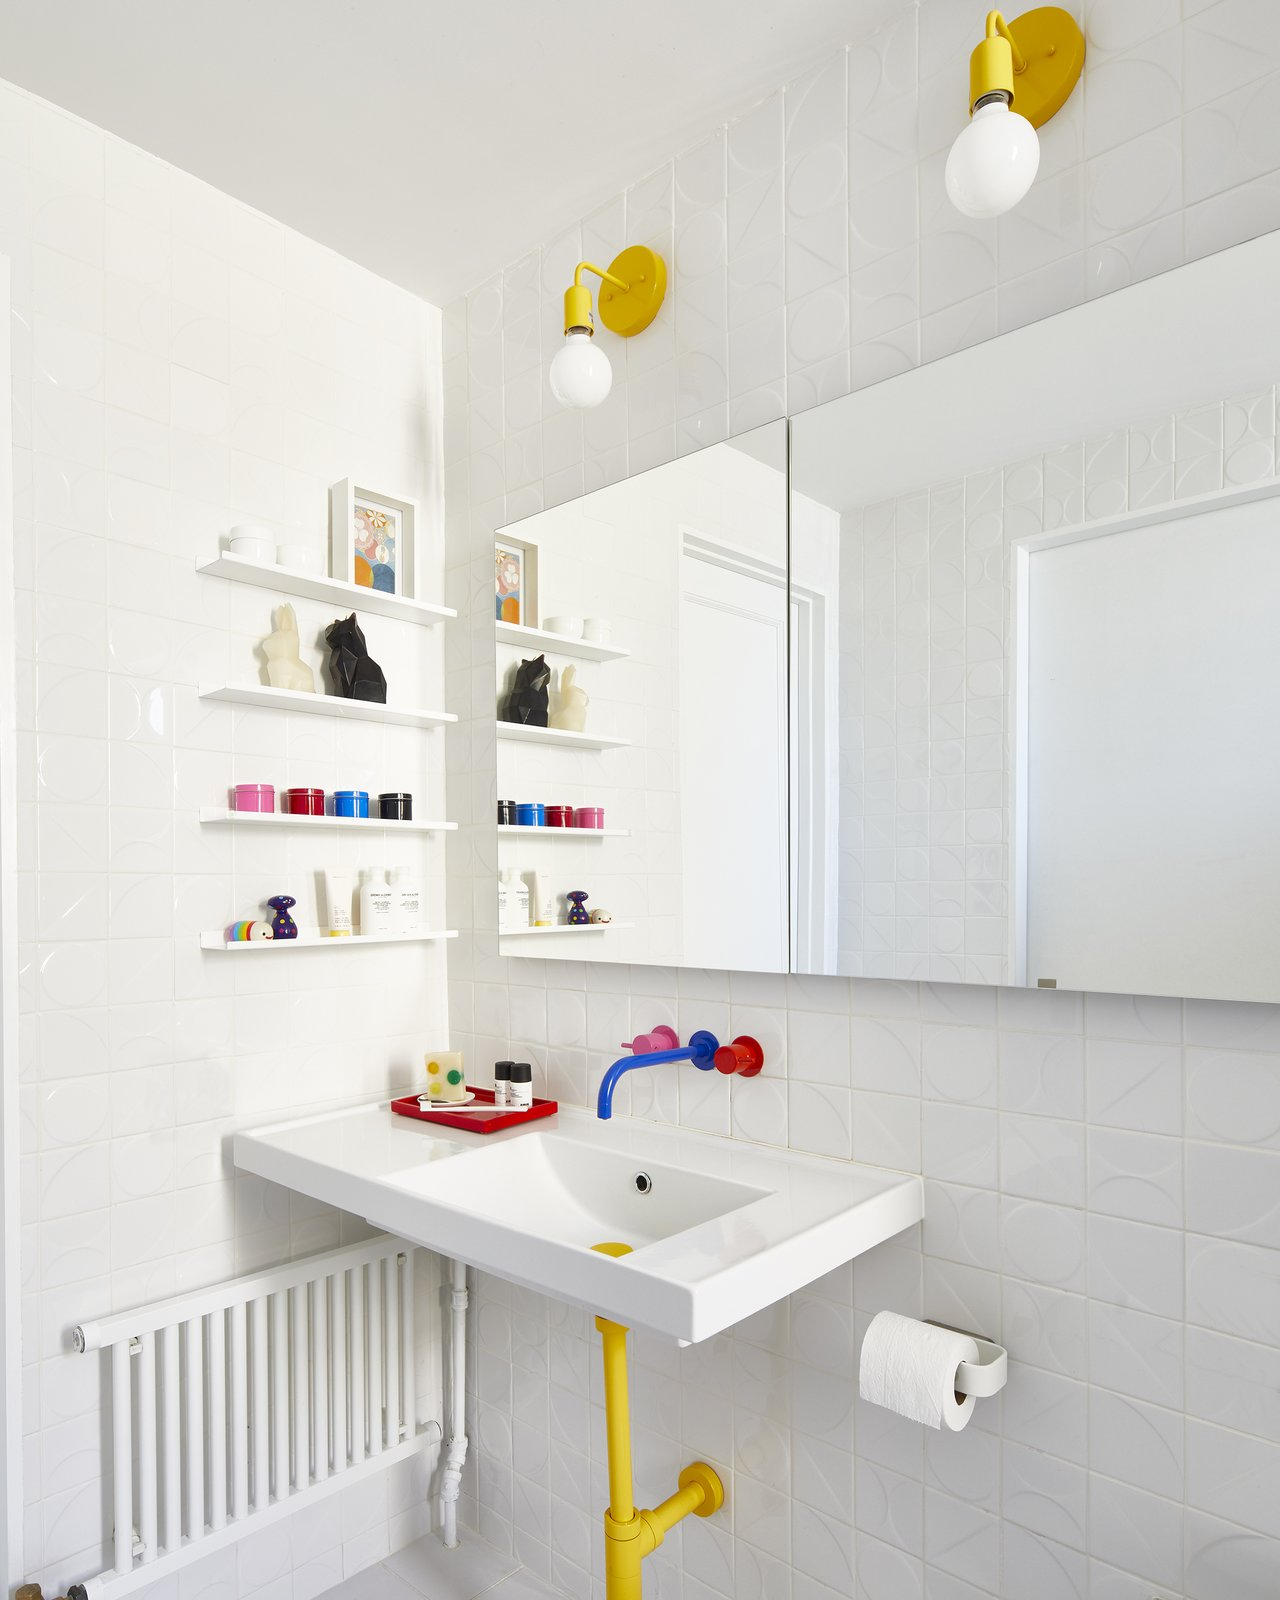 Bathroom in Eastern Parkway by Frederick Tang Architecture